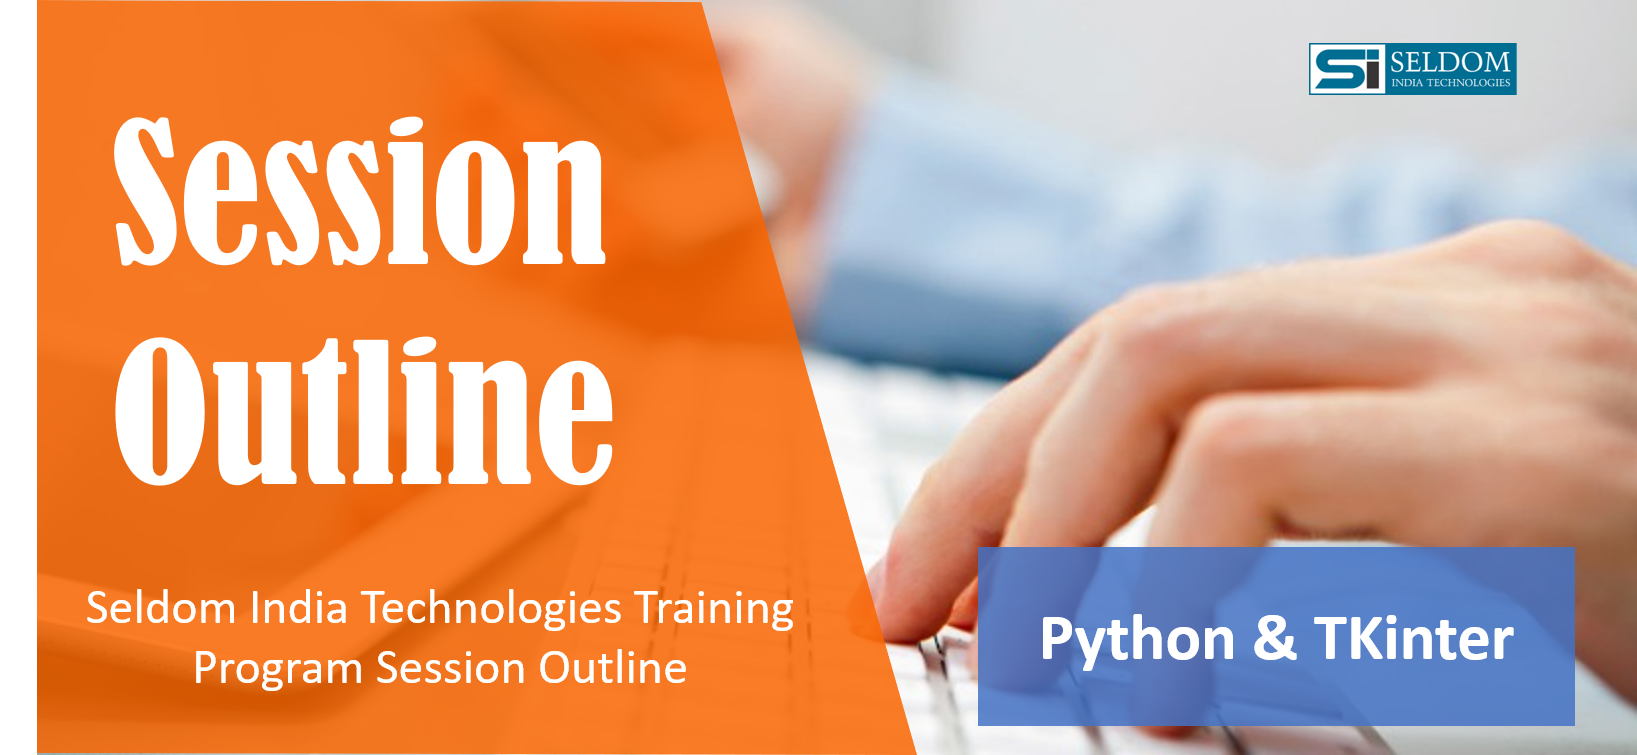 Python TKinter Session Outline